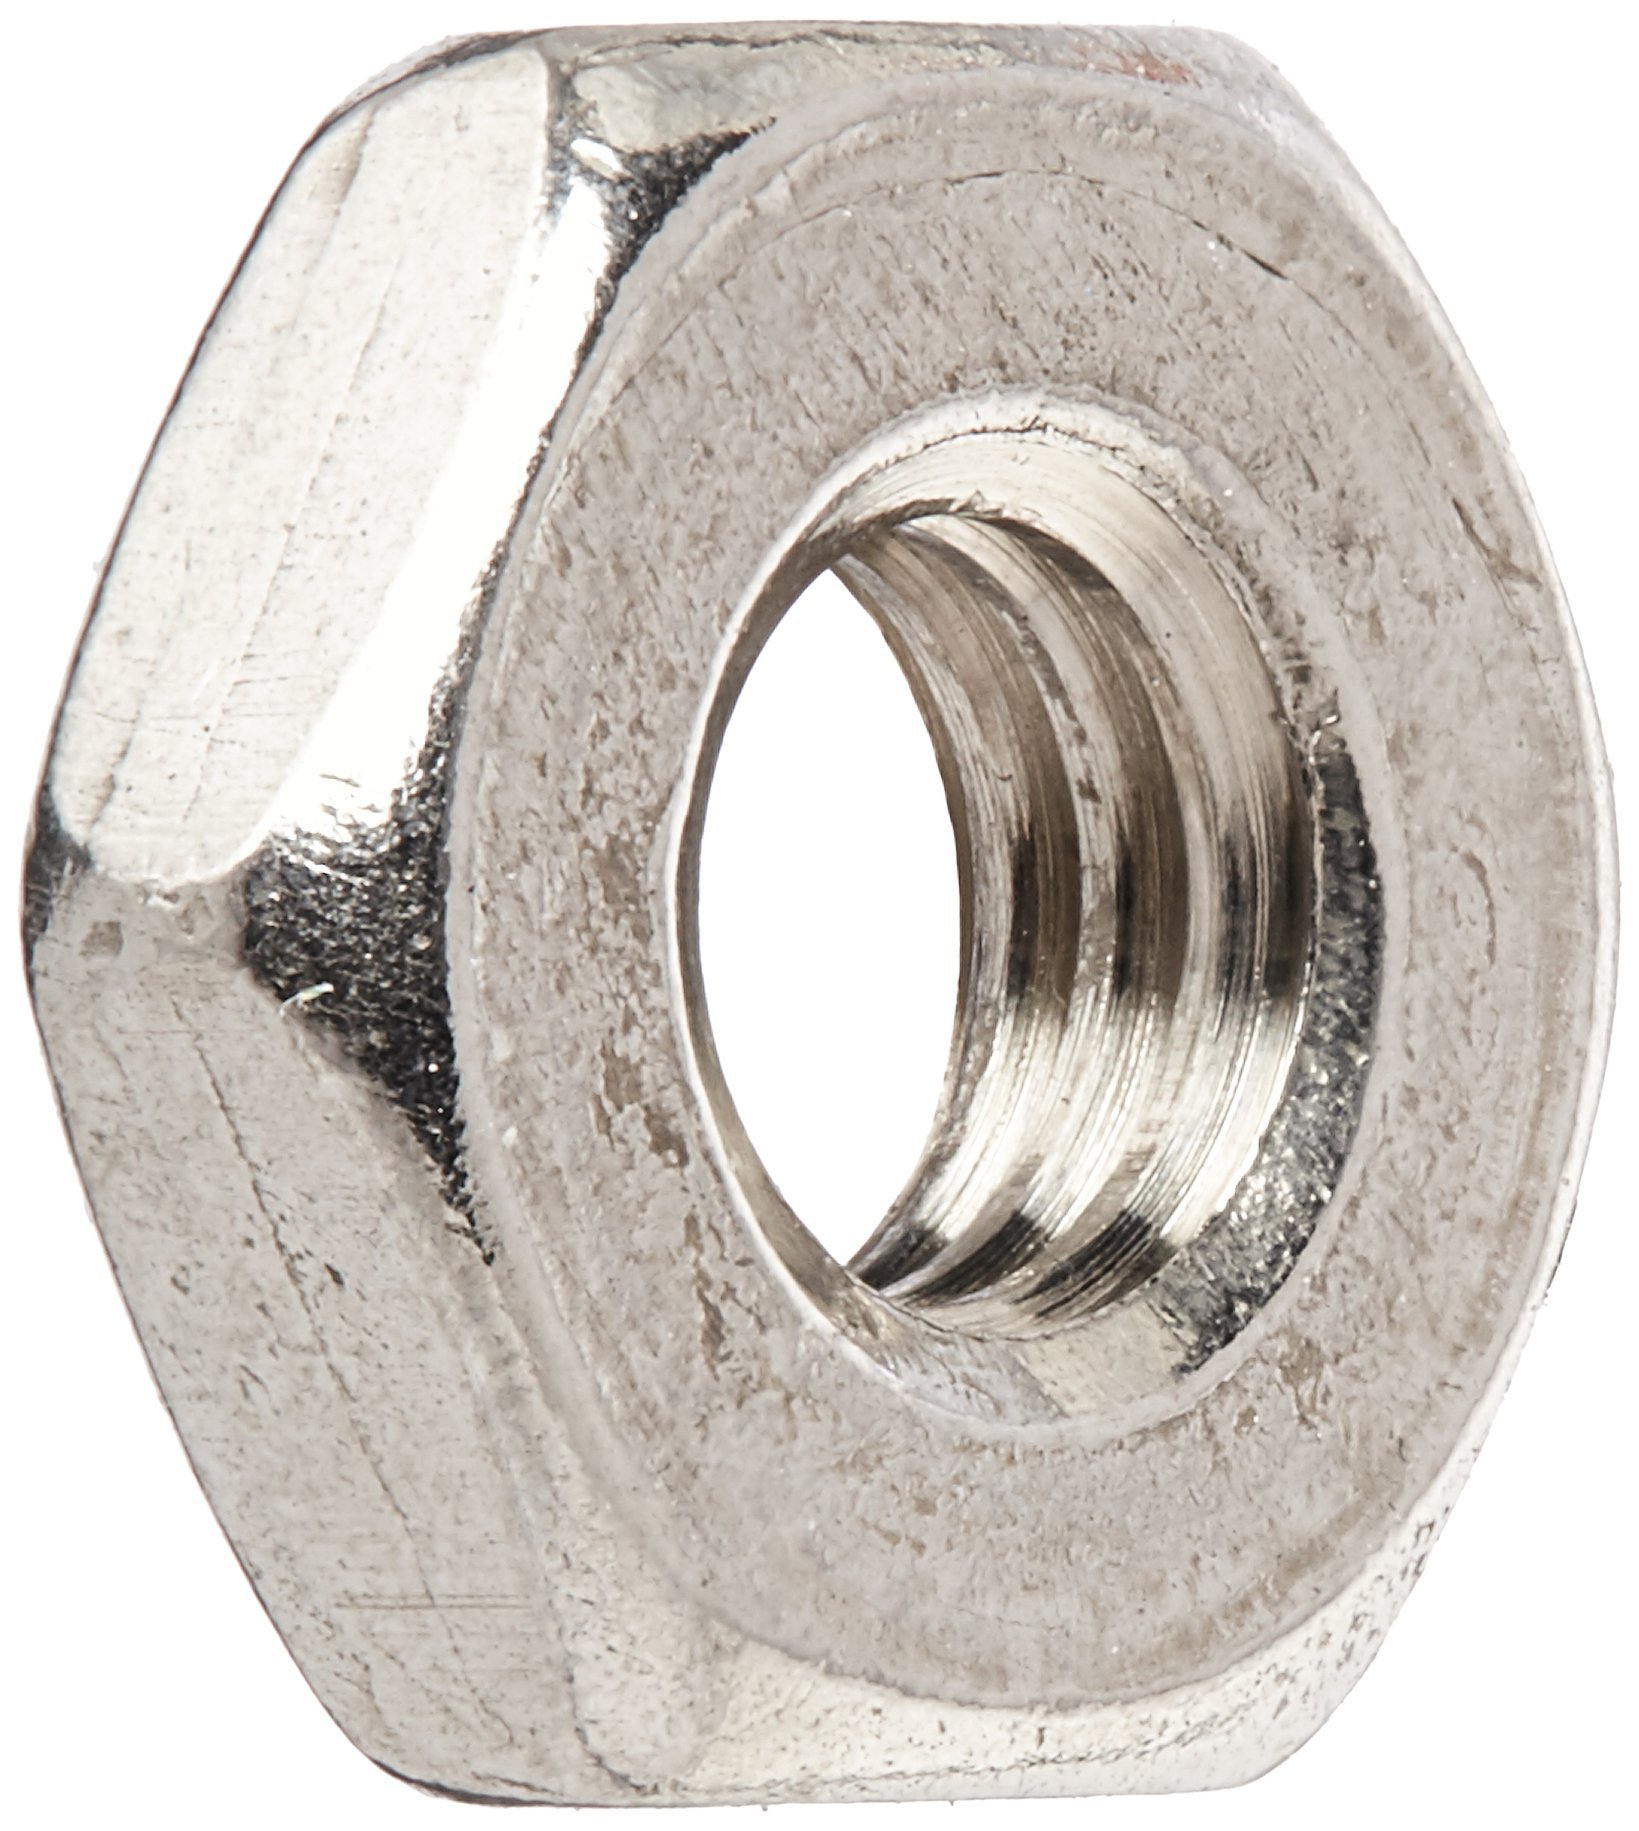 Pentair U36-106SS Lock Hex Nut Replacement Sta-Rite Light Housing Pool and Spa Pump